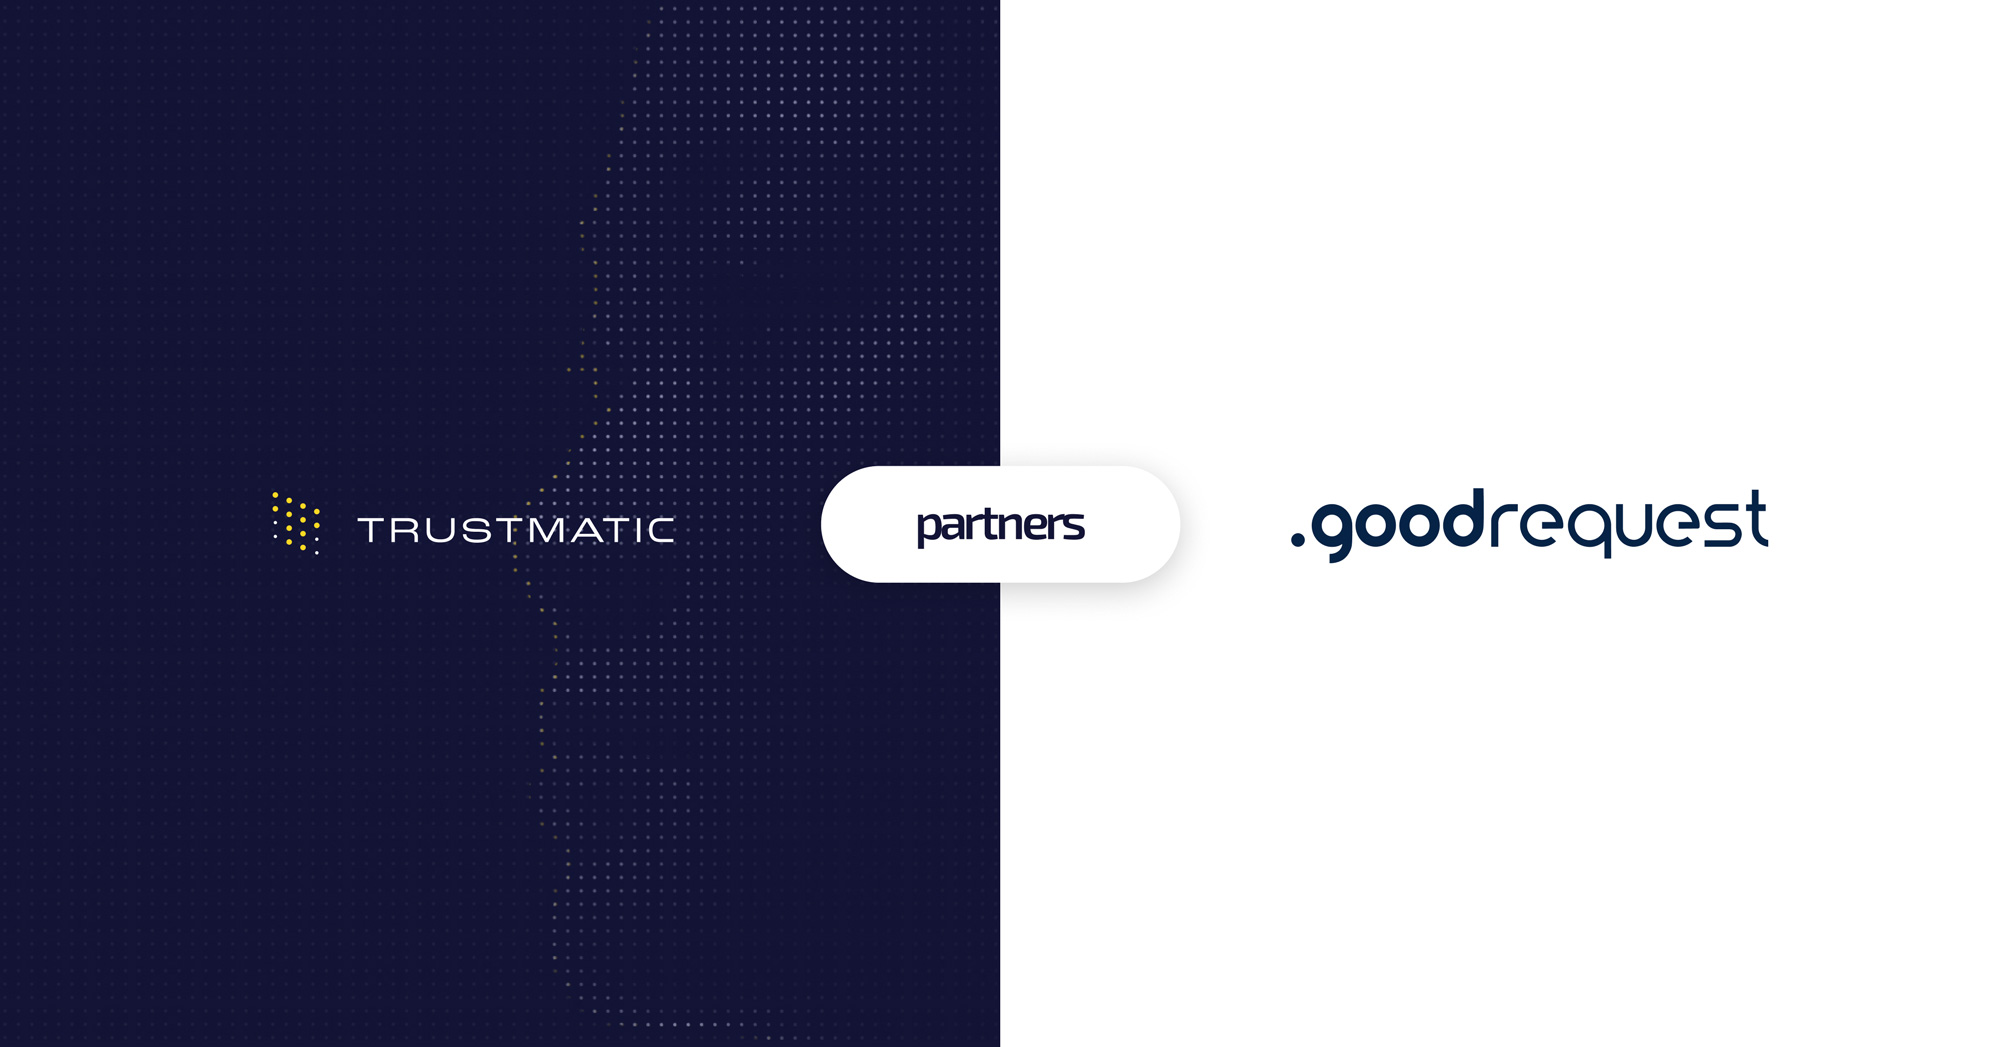 #grpartners: brand, website design and more news for Trustmatic